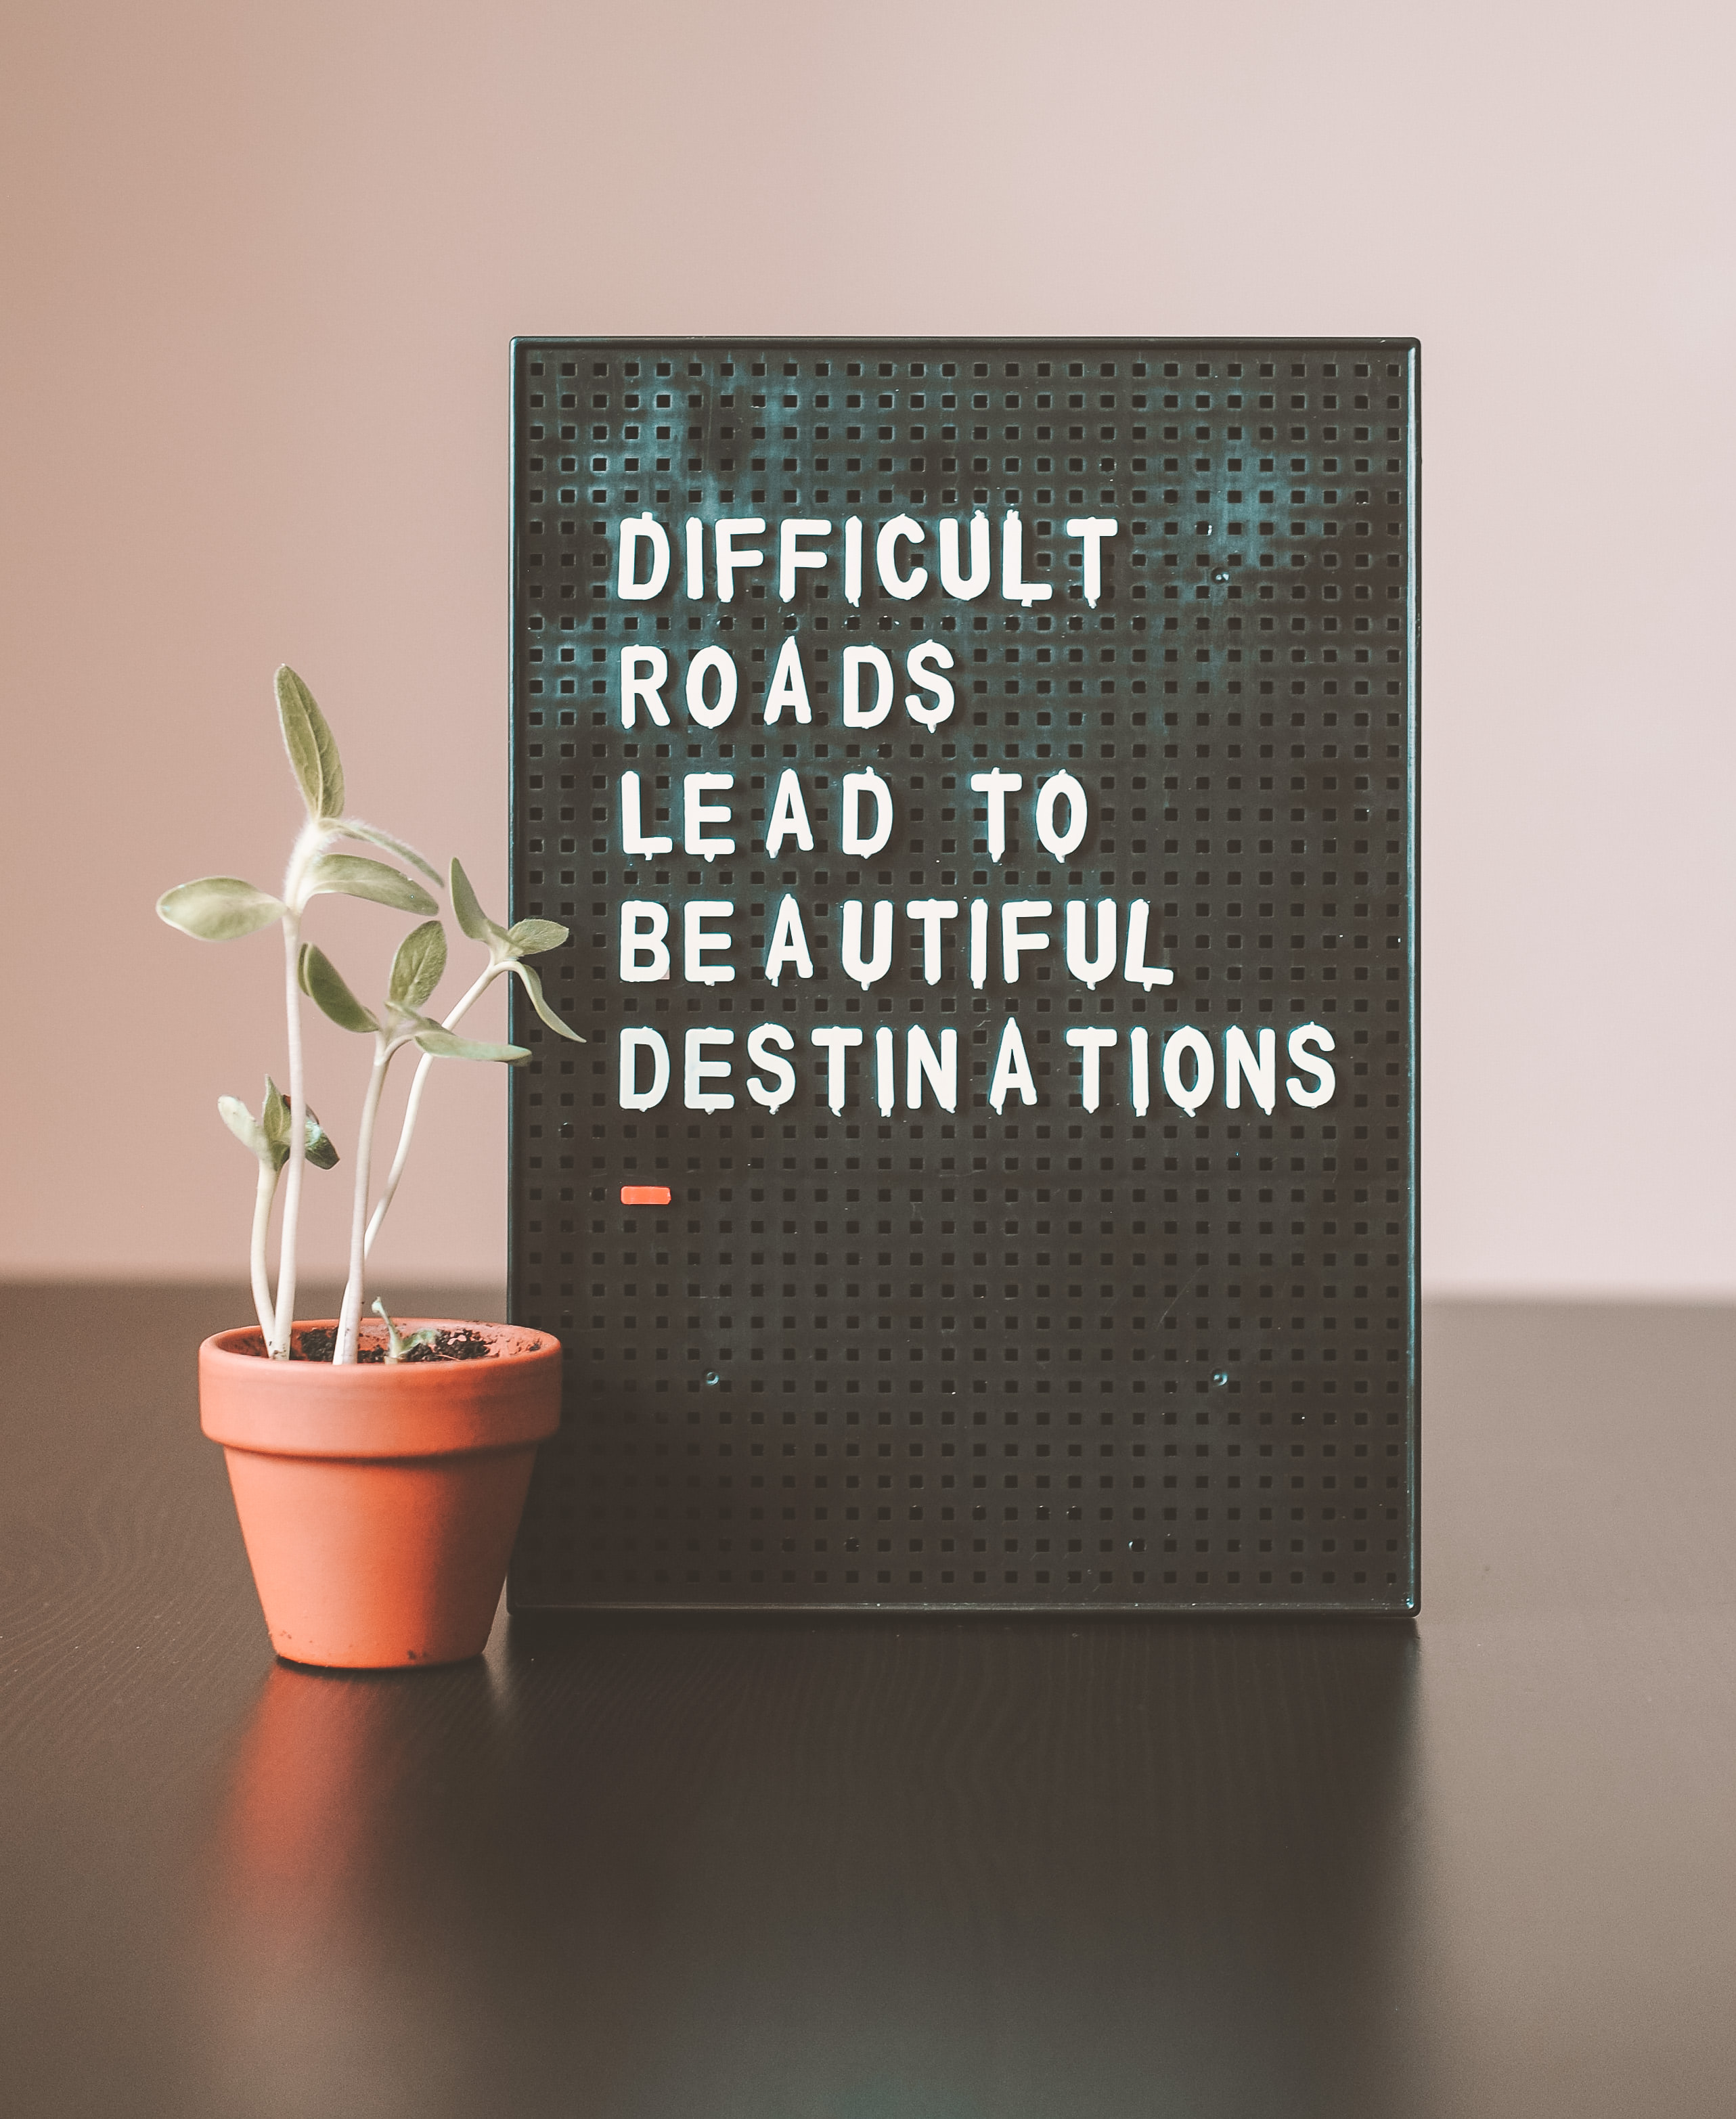 Difficult roads lead to beautiful destinations..